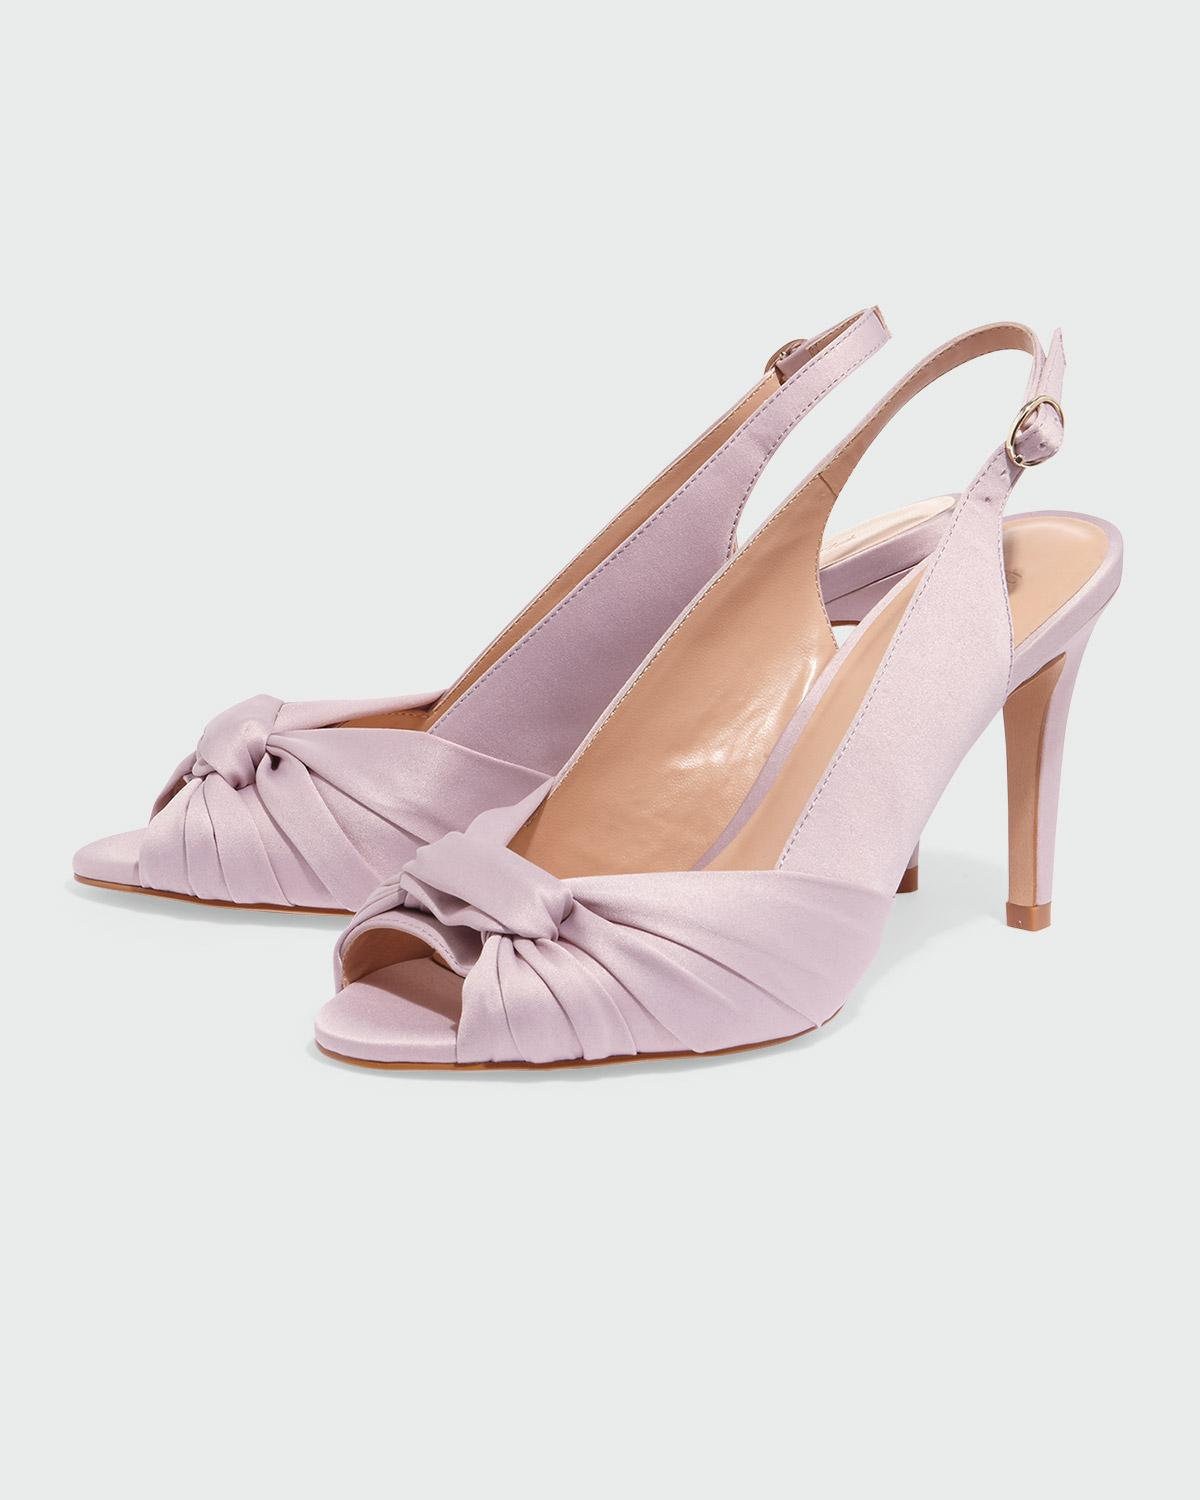 76c83f85fa9 Phase Eight Rhia Knot Front Slingback Peeptoe Shoe in Pink - Lyst